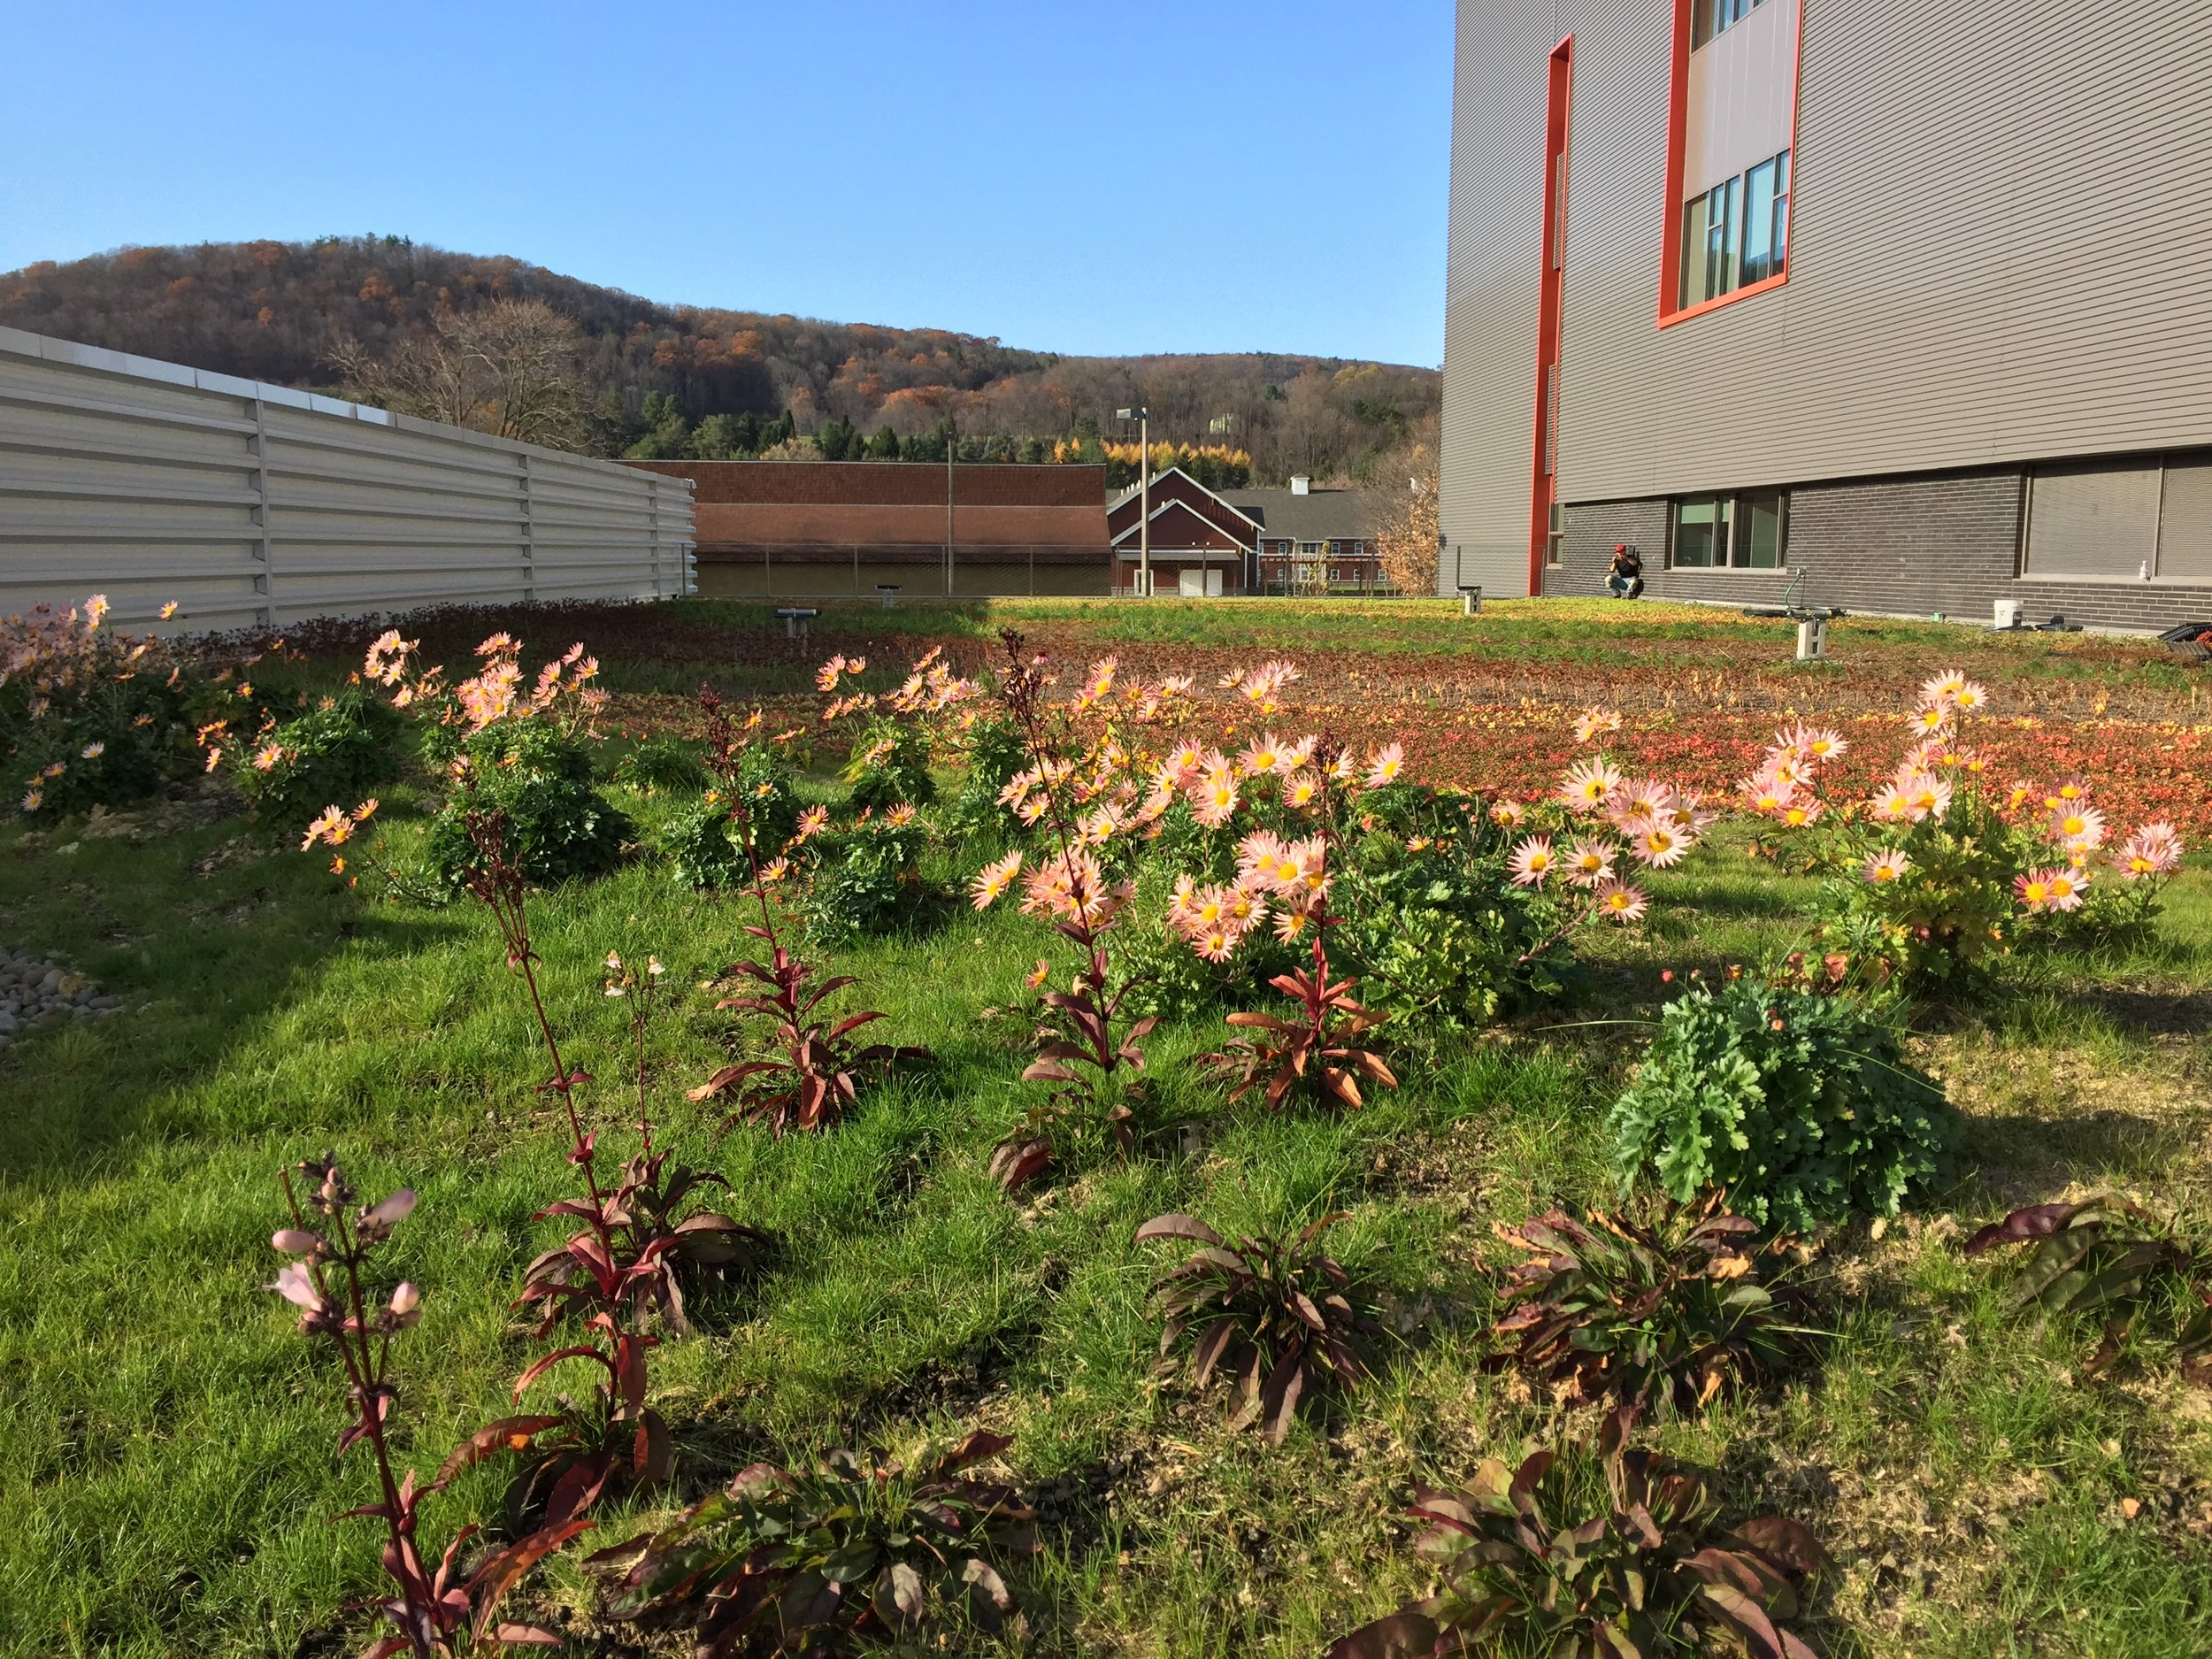 recover-green-roofs-SUNY-cobleskill-2014-15.JPG